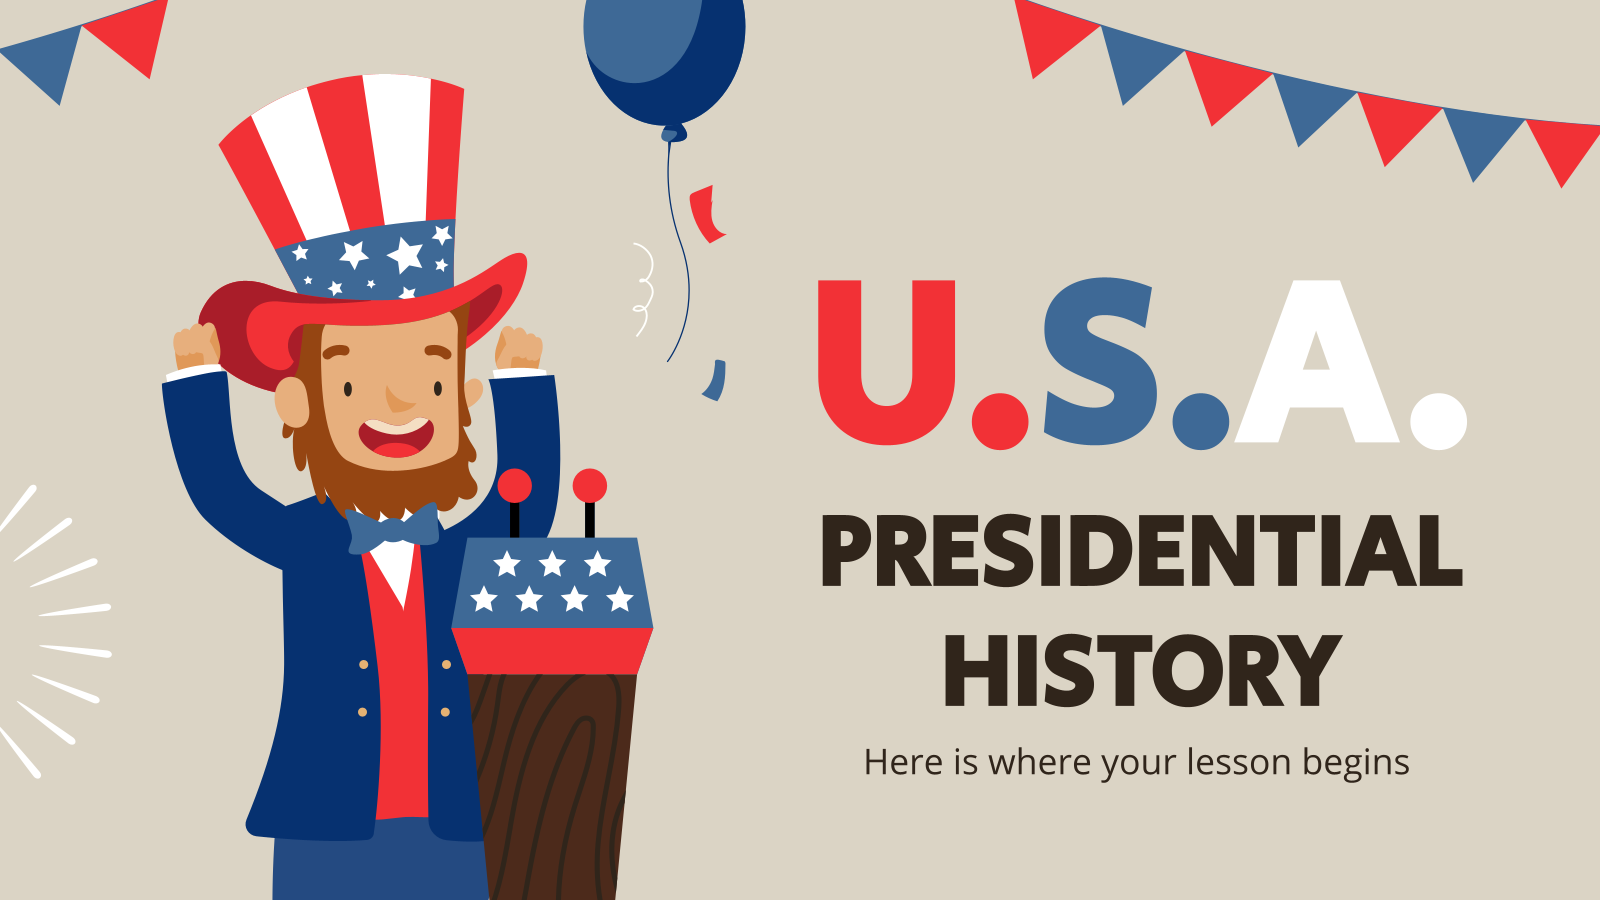 USA Presidential History presentation template